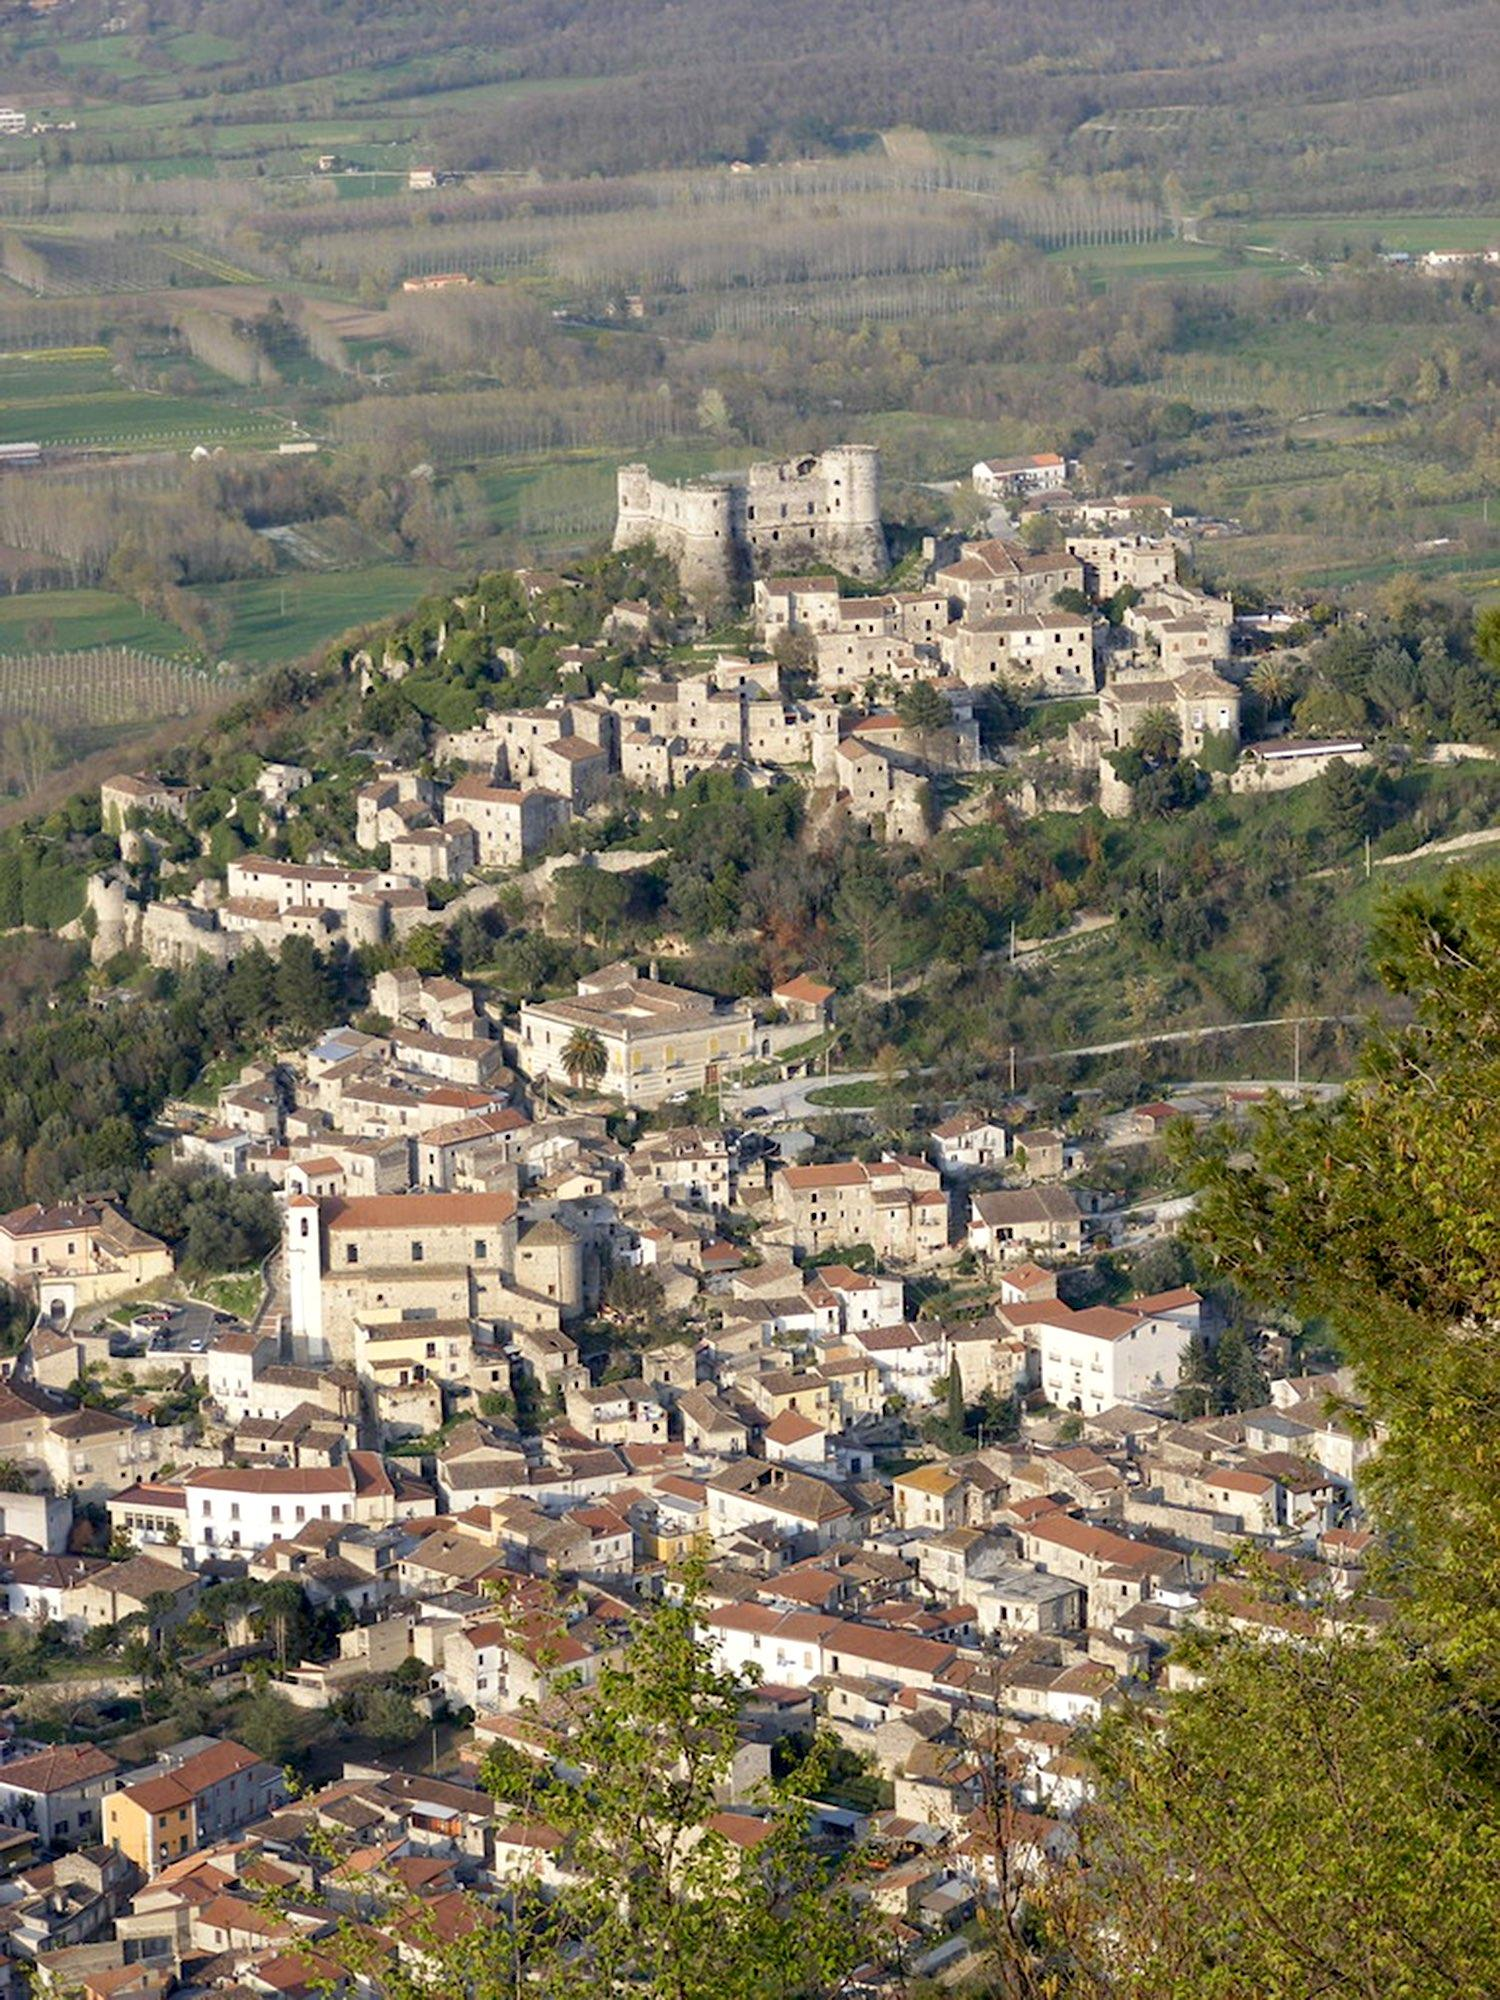 Vairano Patenora has a commanding view of the surrounding hills and farmland. – © Guglielmo D'Arezzo